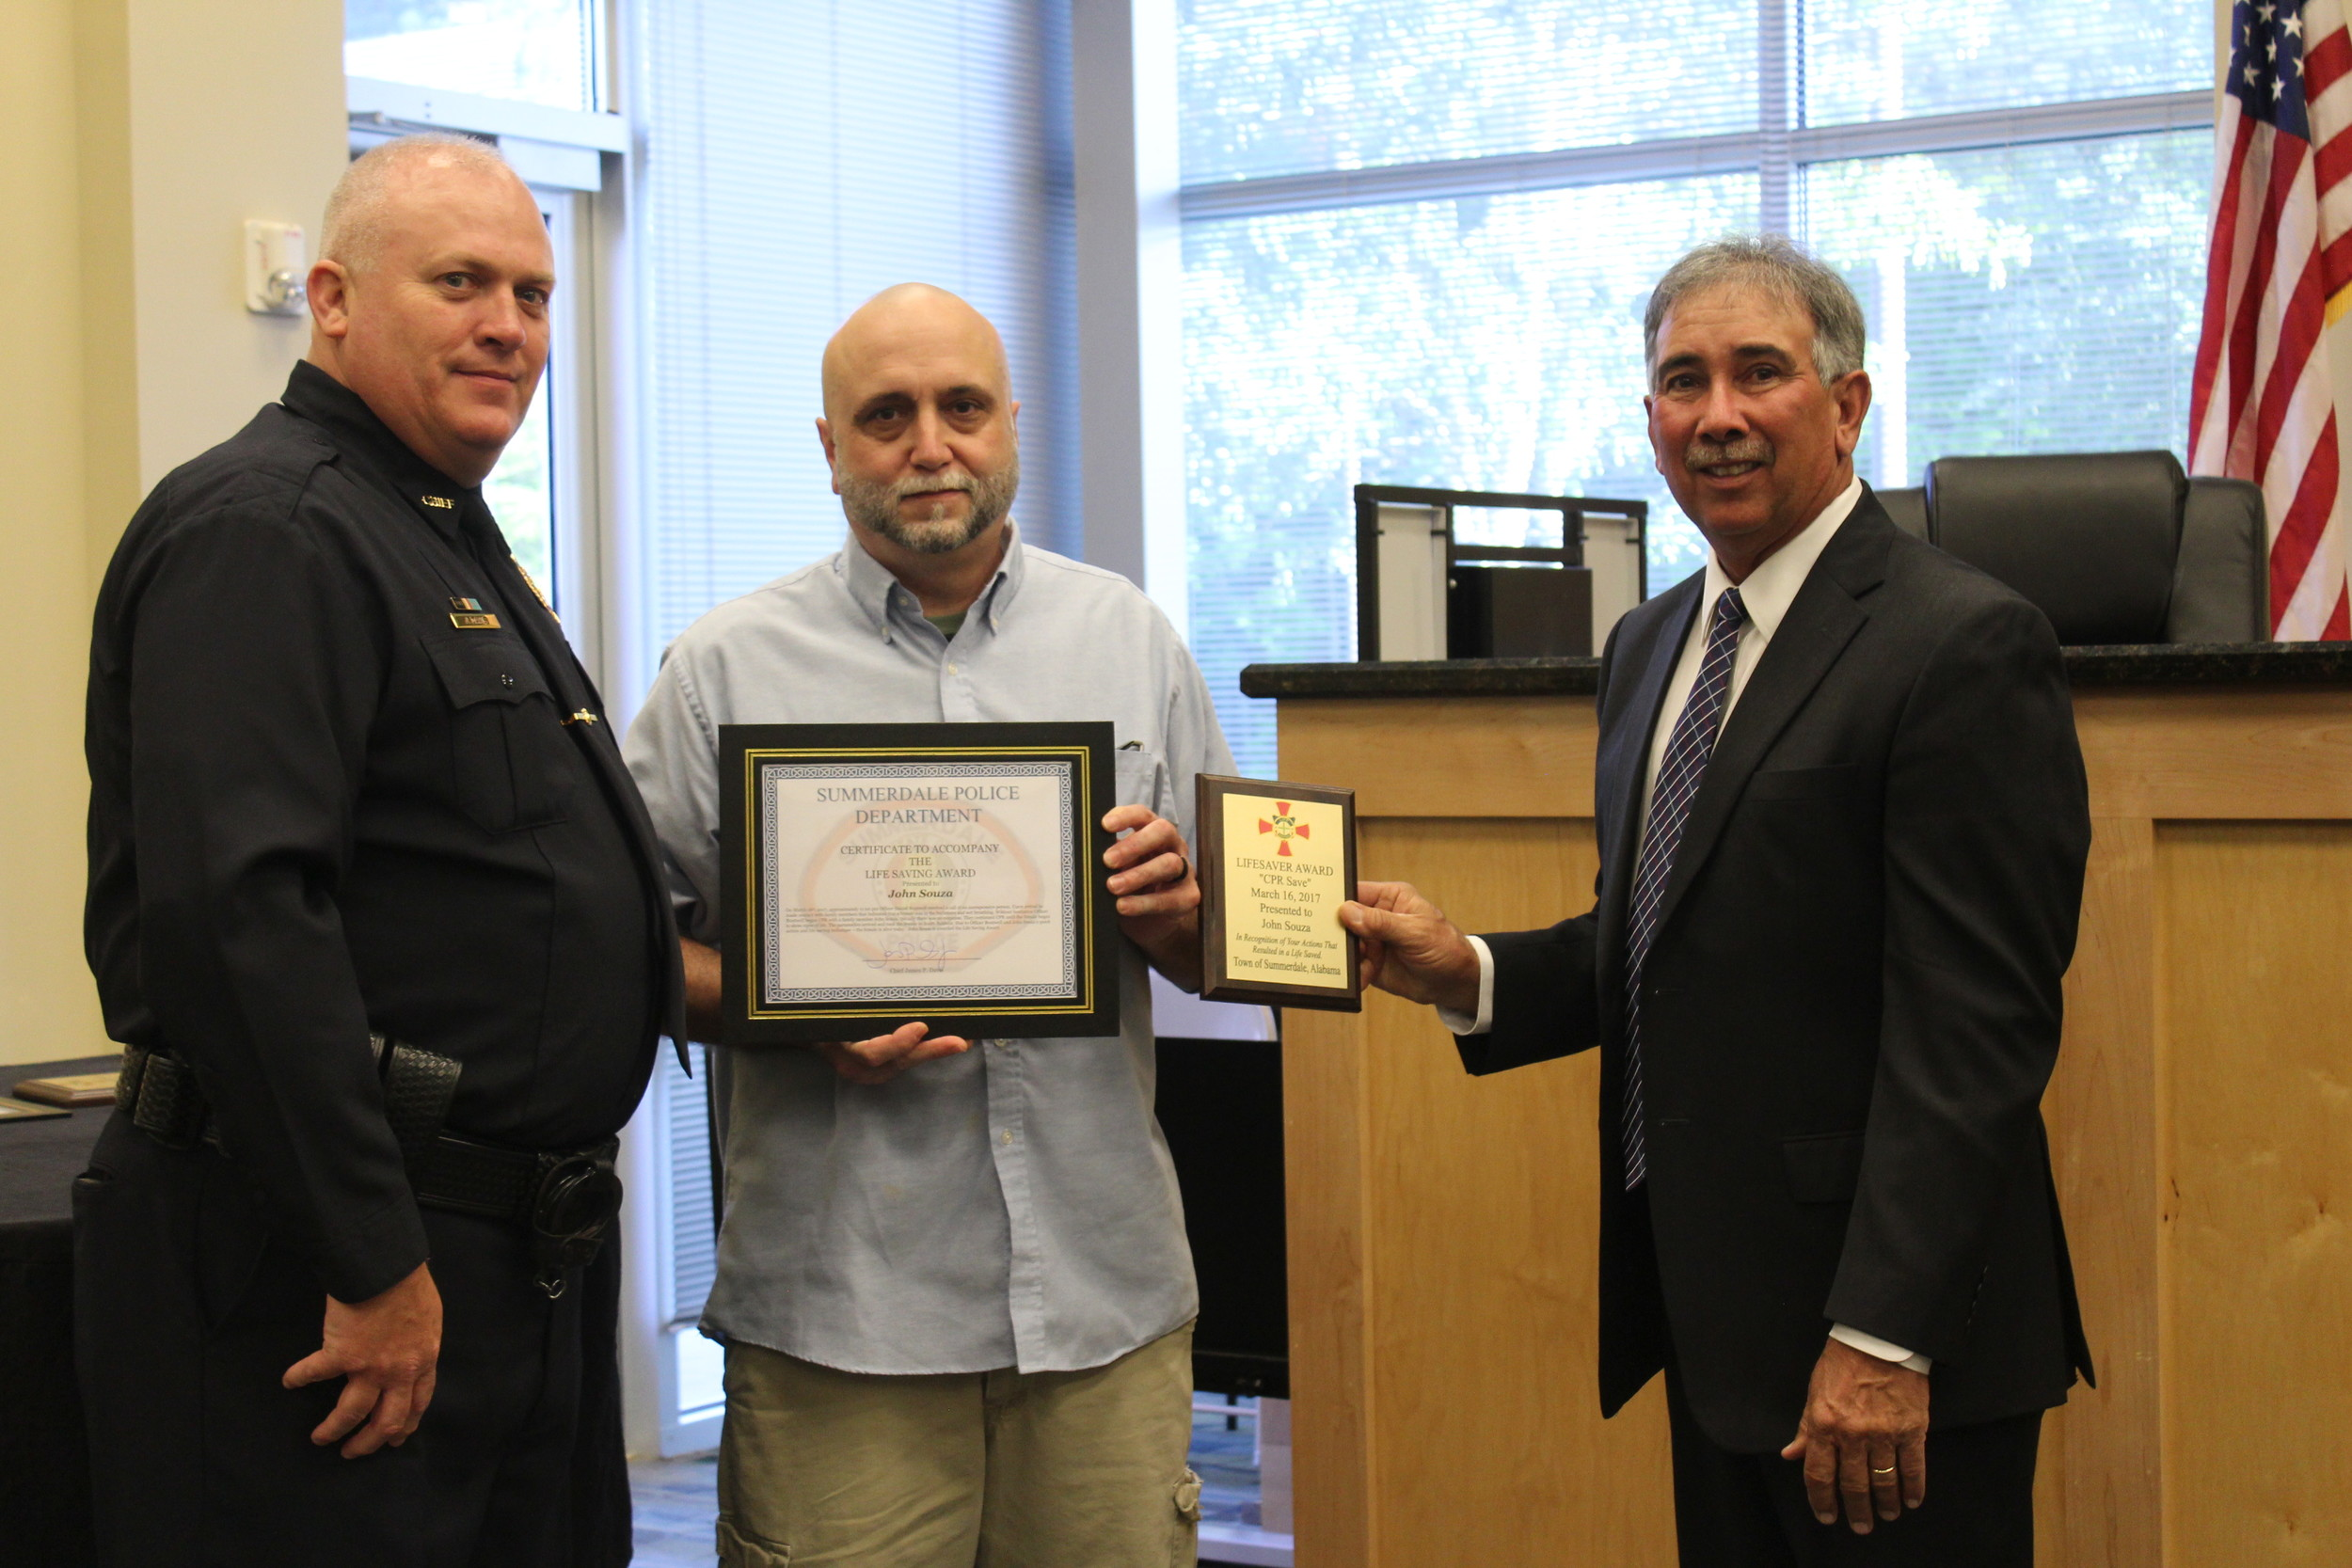 John Souza received one of three lifesaving awards at the Summerdale Town Council meeting on April 10.